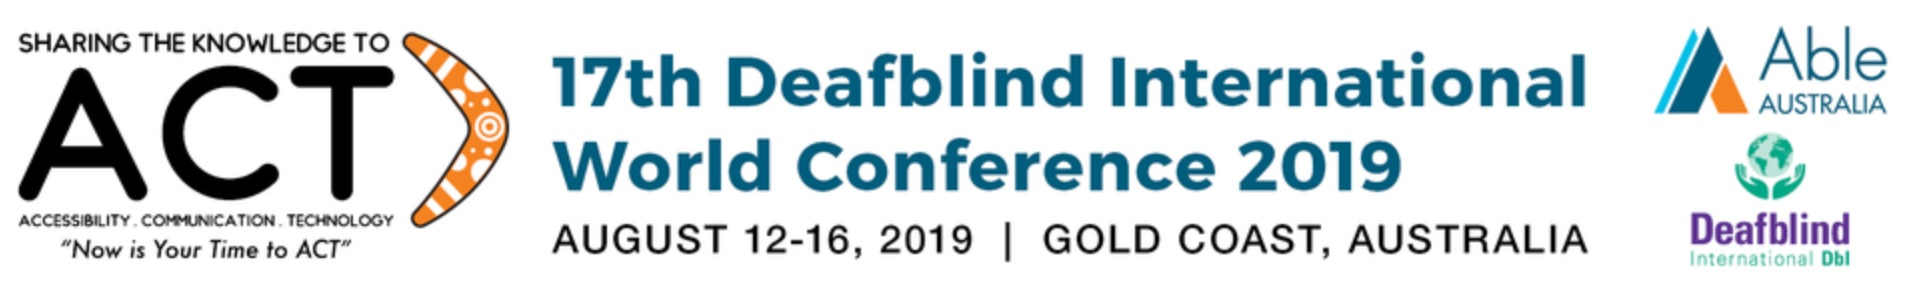 Deafblind International World Conference 2019 logo